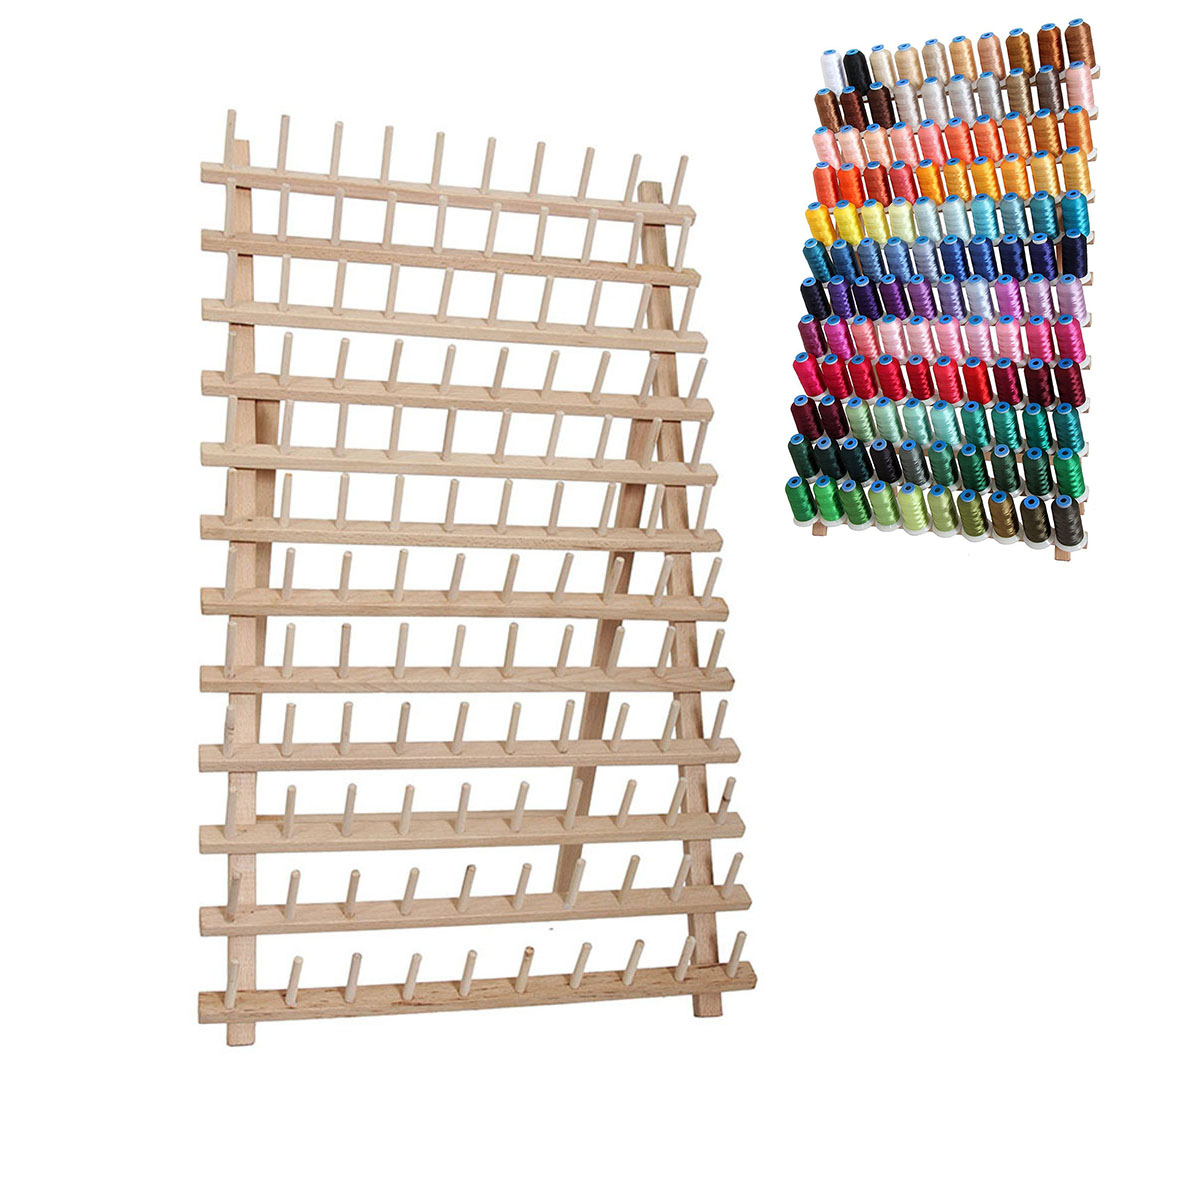 Foldable Wood Thread Stand Rack Holds Organizer Wall Mount 120 Spool Cone Embroidery Machine Sewing Storage Holder(China)